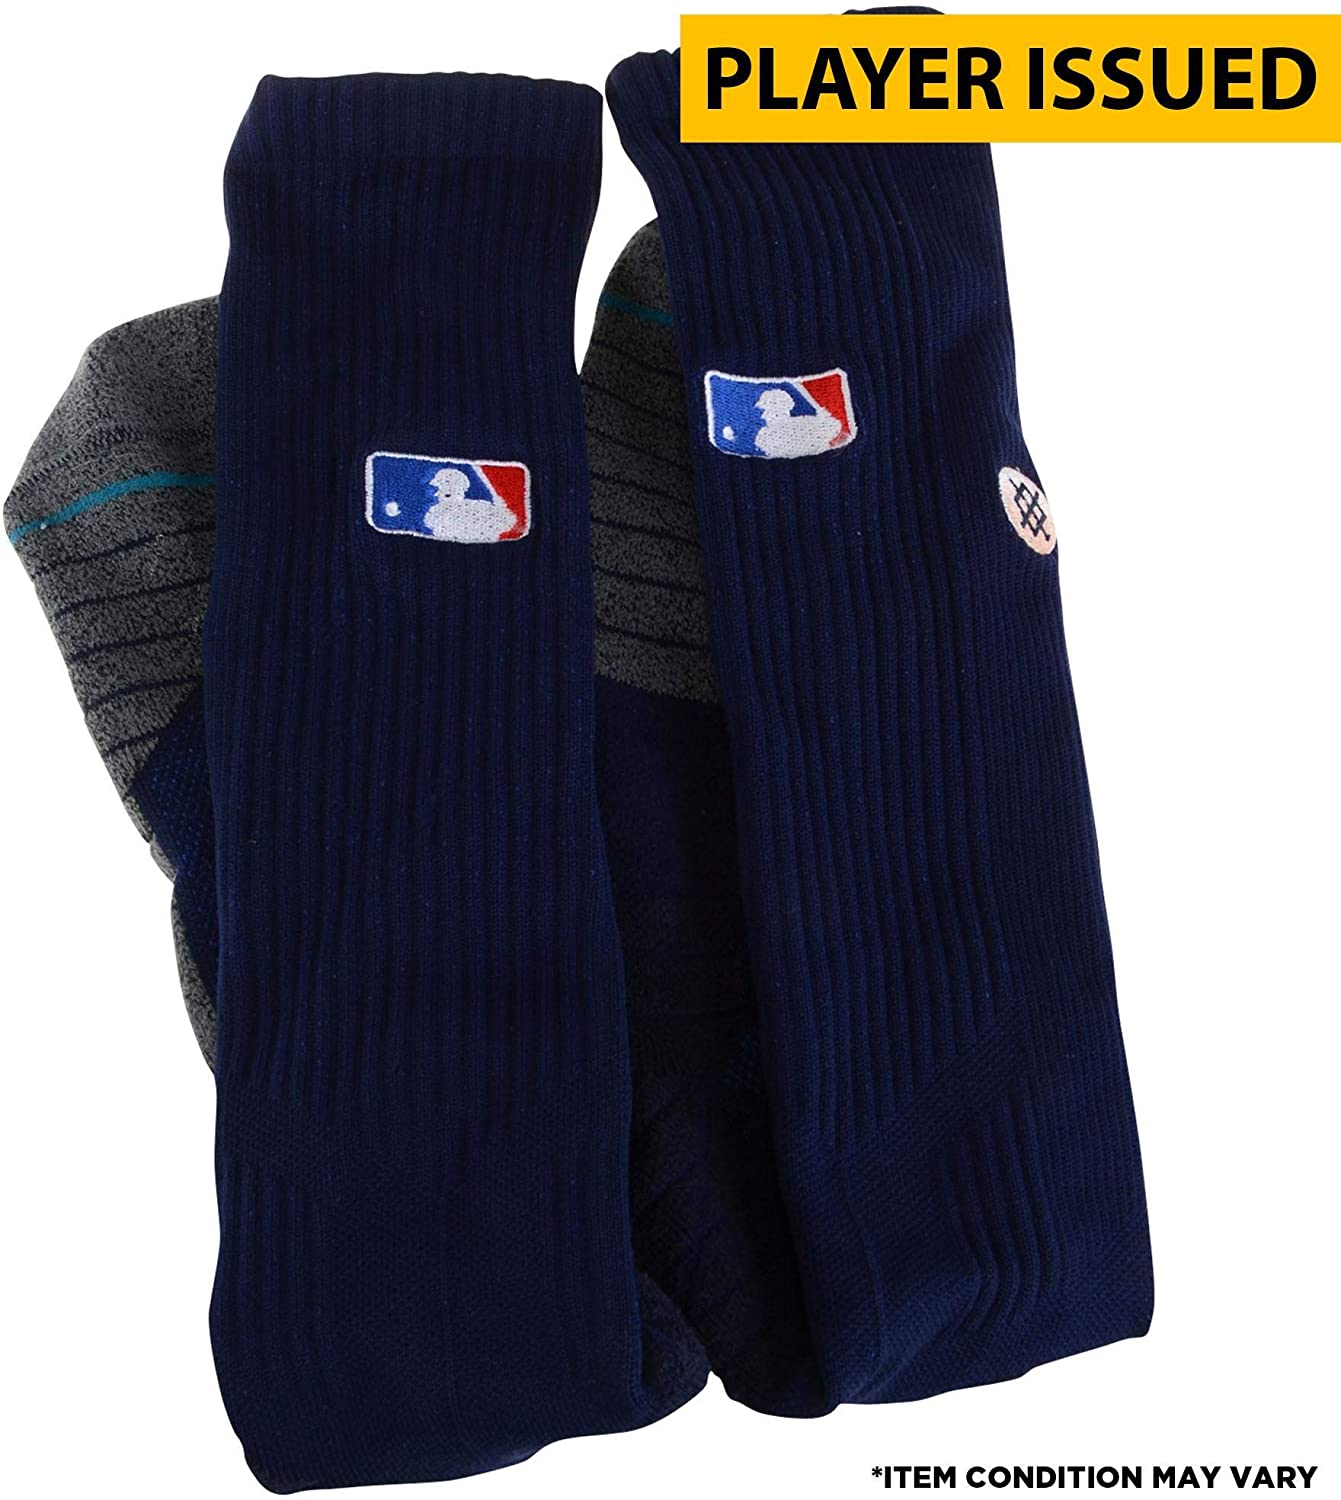 Carlos Correa Houston Astros Player-Issued Navy Socks - Size XL - Fanatics  Authentic Certified - Other Game Used MLB Items at Amazon s Sports  Collectibles ... 246e0052e